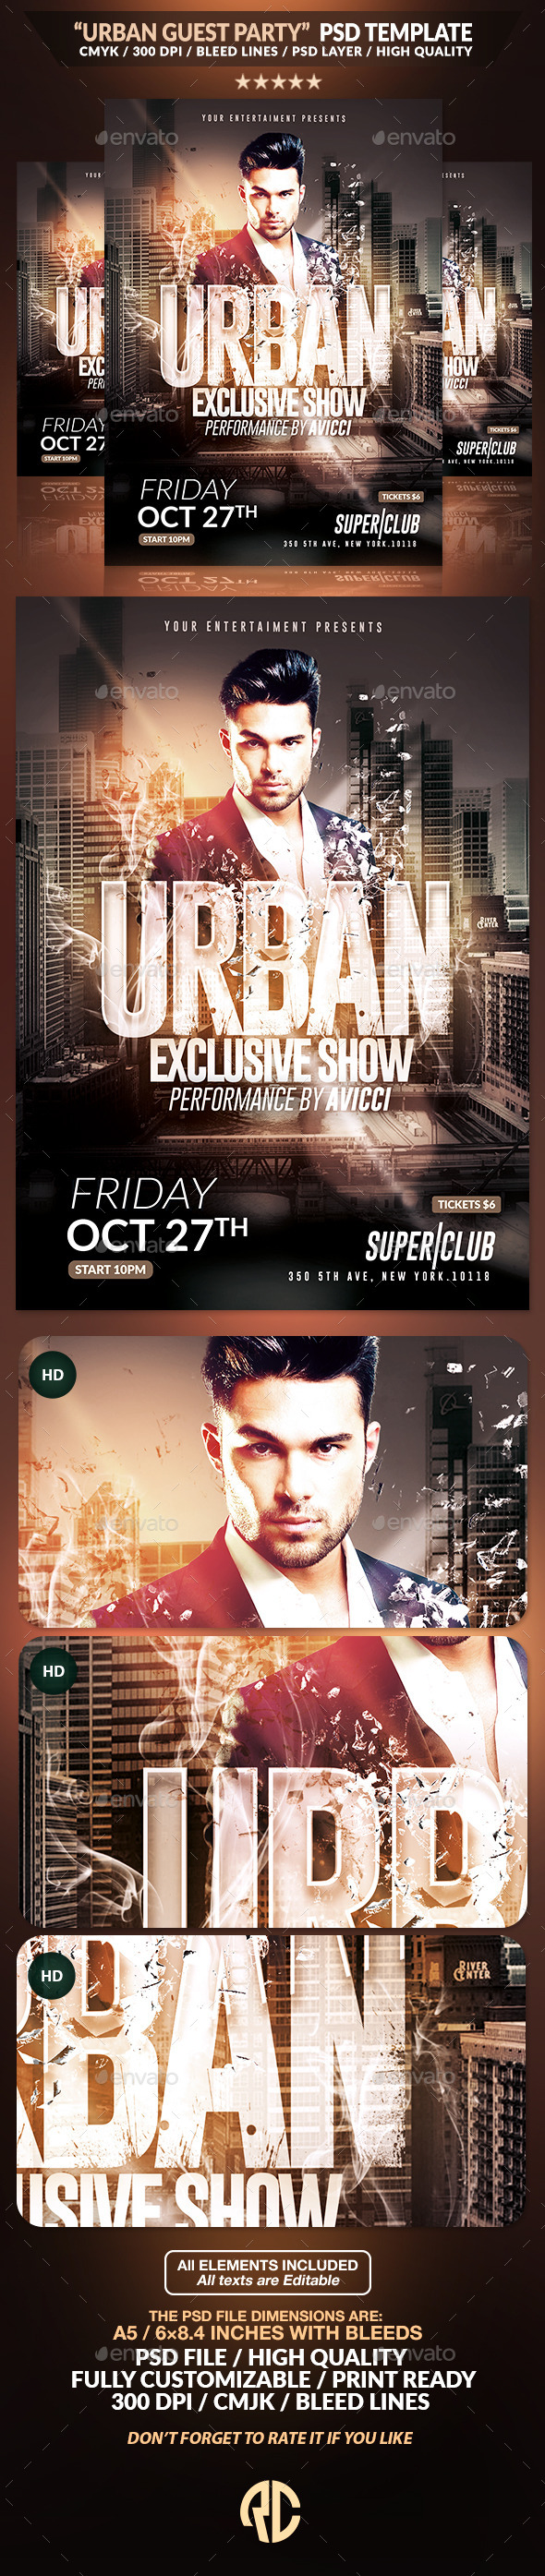 Urban Guest Party | Psd Flyer Template - Events Flyers